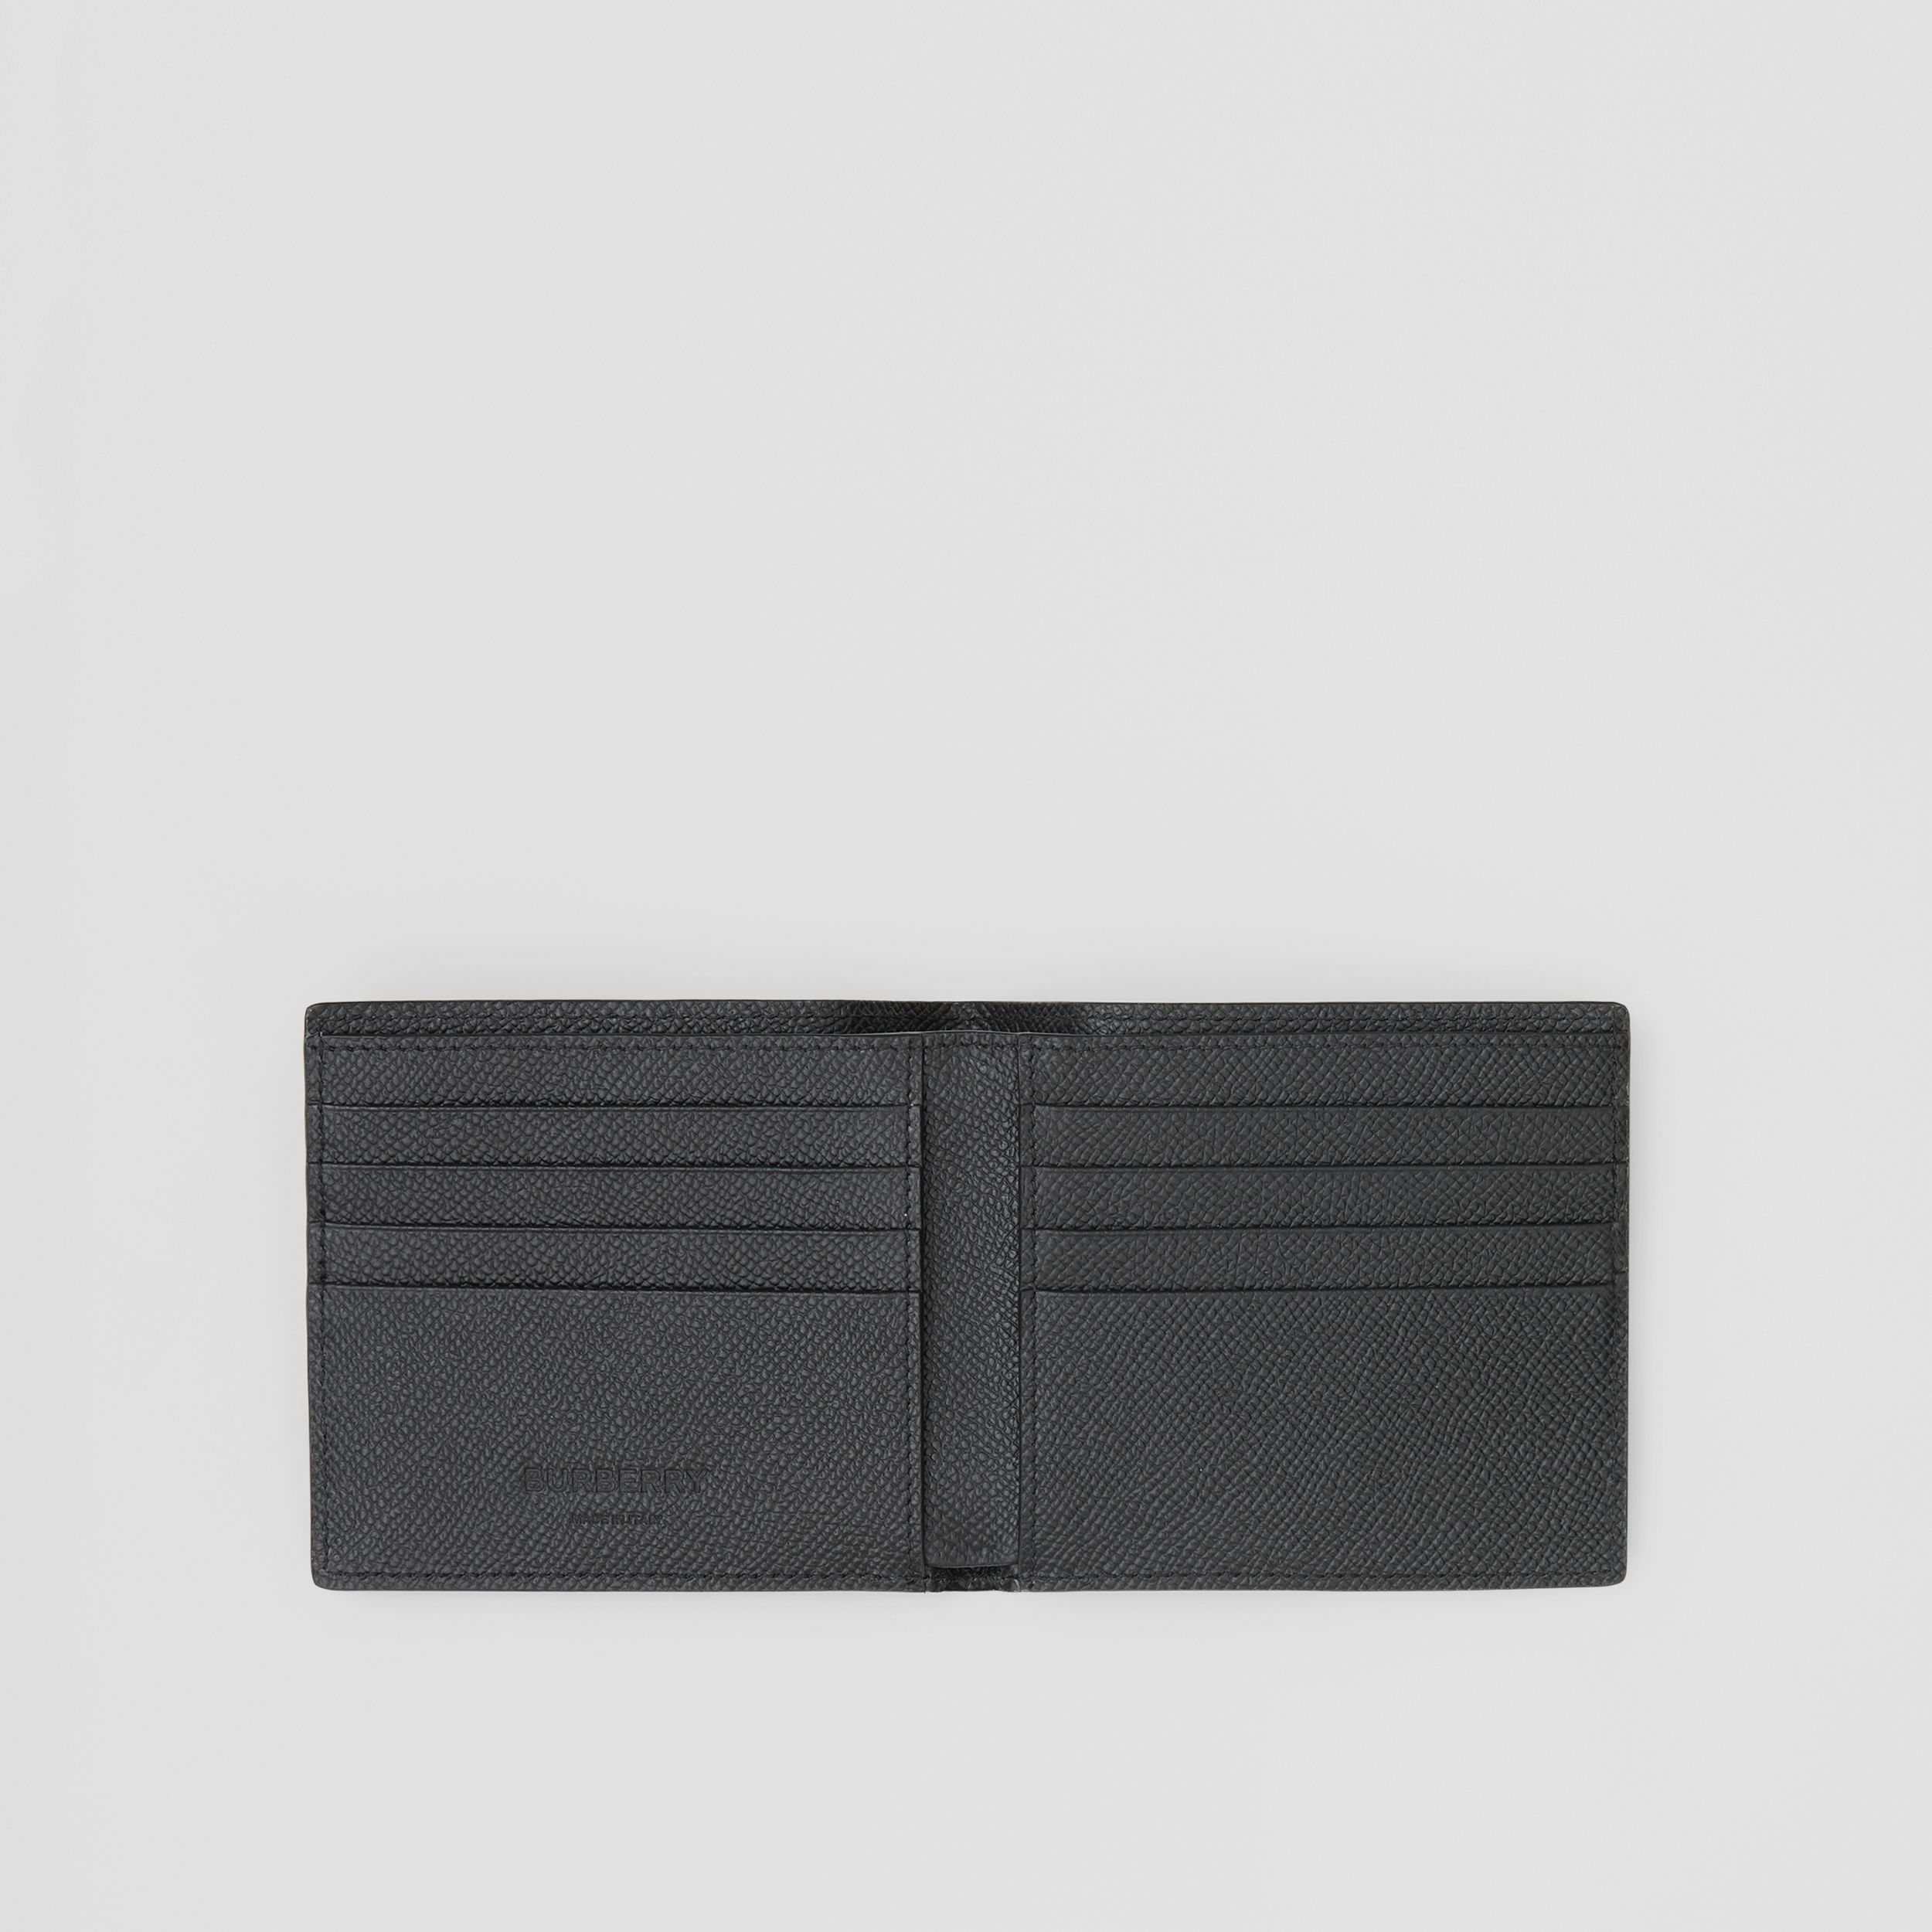 Grainy Leather International Bifold Wallet in Black - Men | Burberry - 3